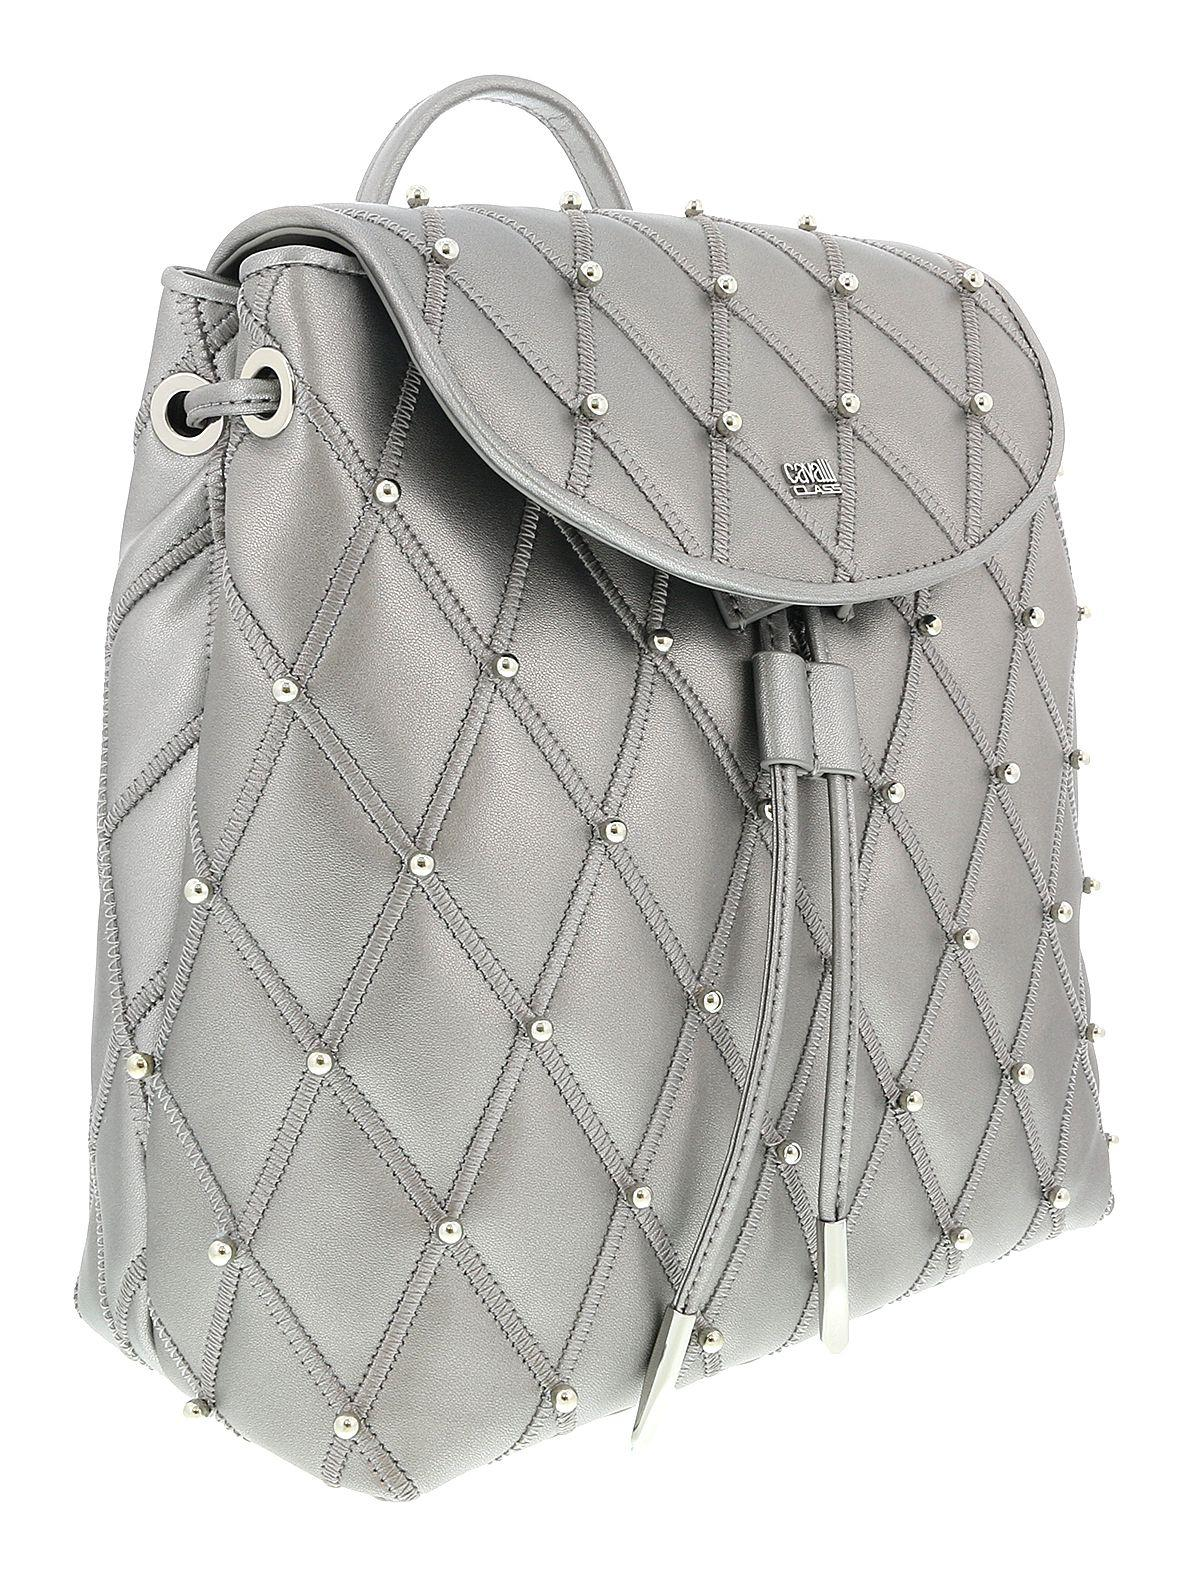 bb65d7570a9a Lyst - Roberto Cavalli Hxlpf5 001 Silver Backpack in Metallic